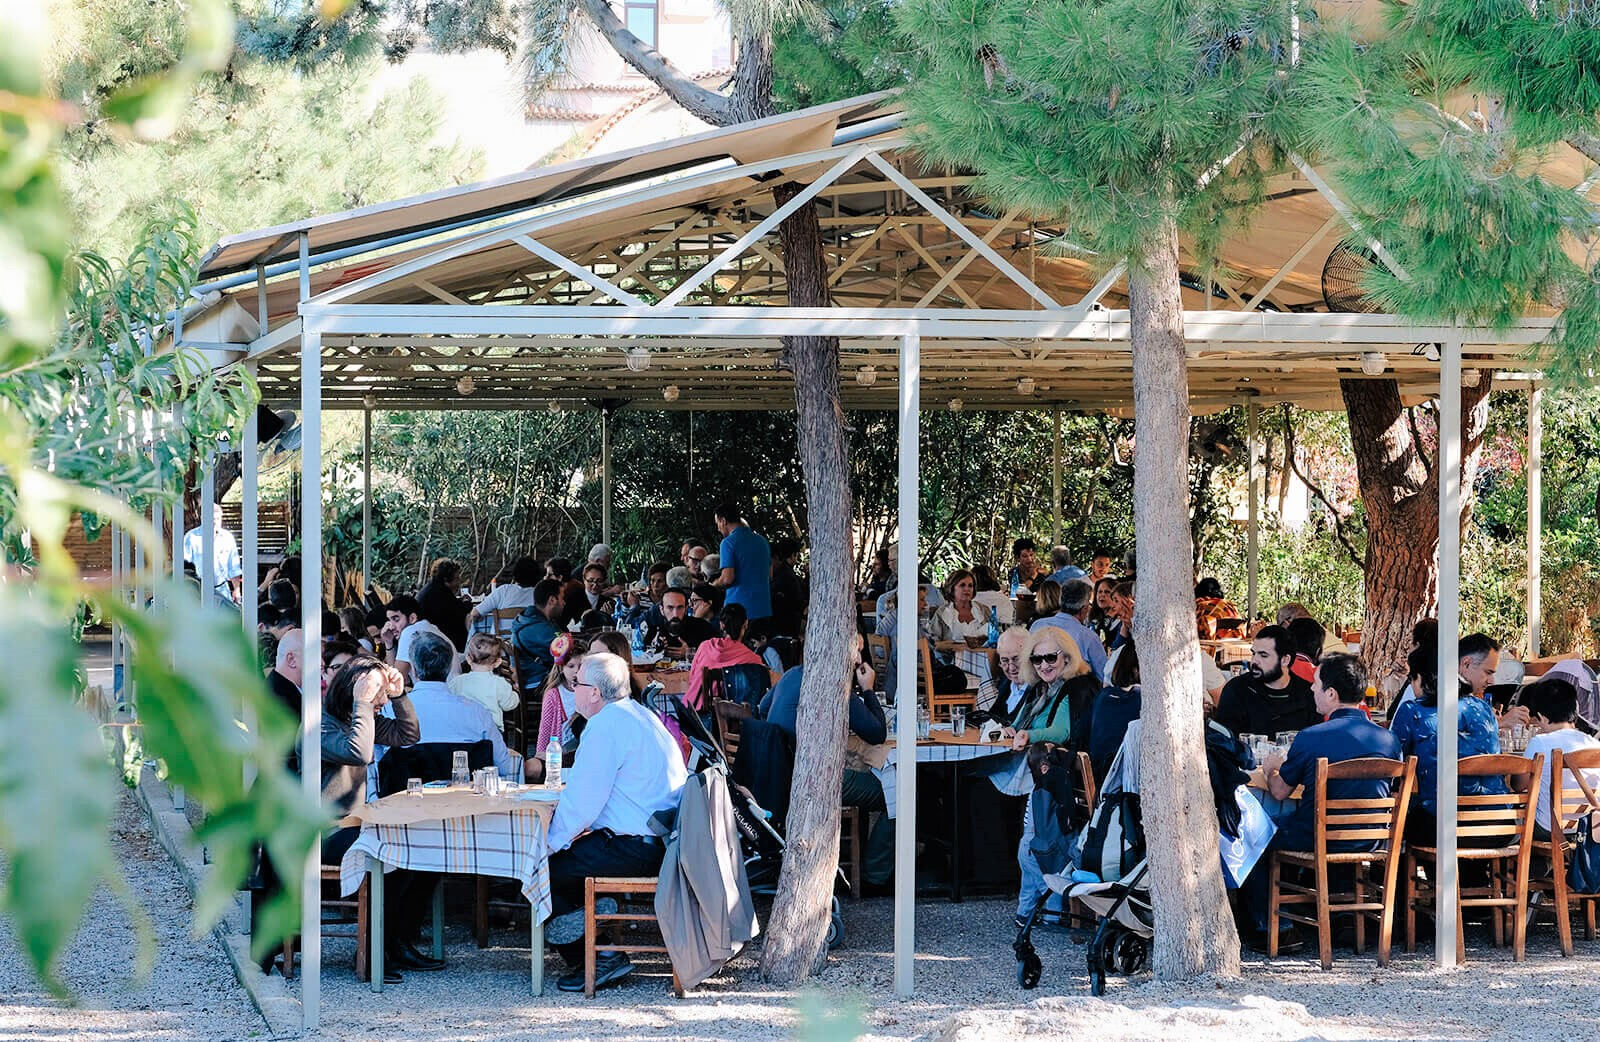 To Steki tou Ilia  gets crowded during the weekends, as Greek families often enjoy their lunch there. Photo source: Georgios Makkas